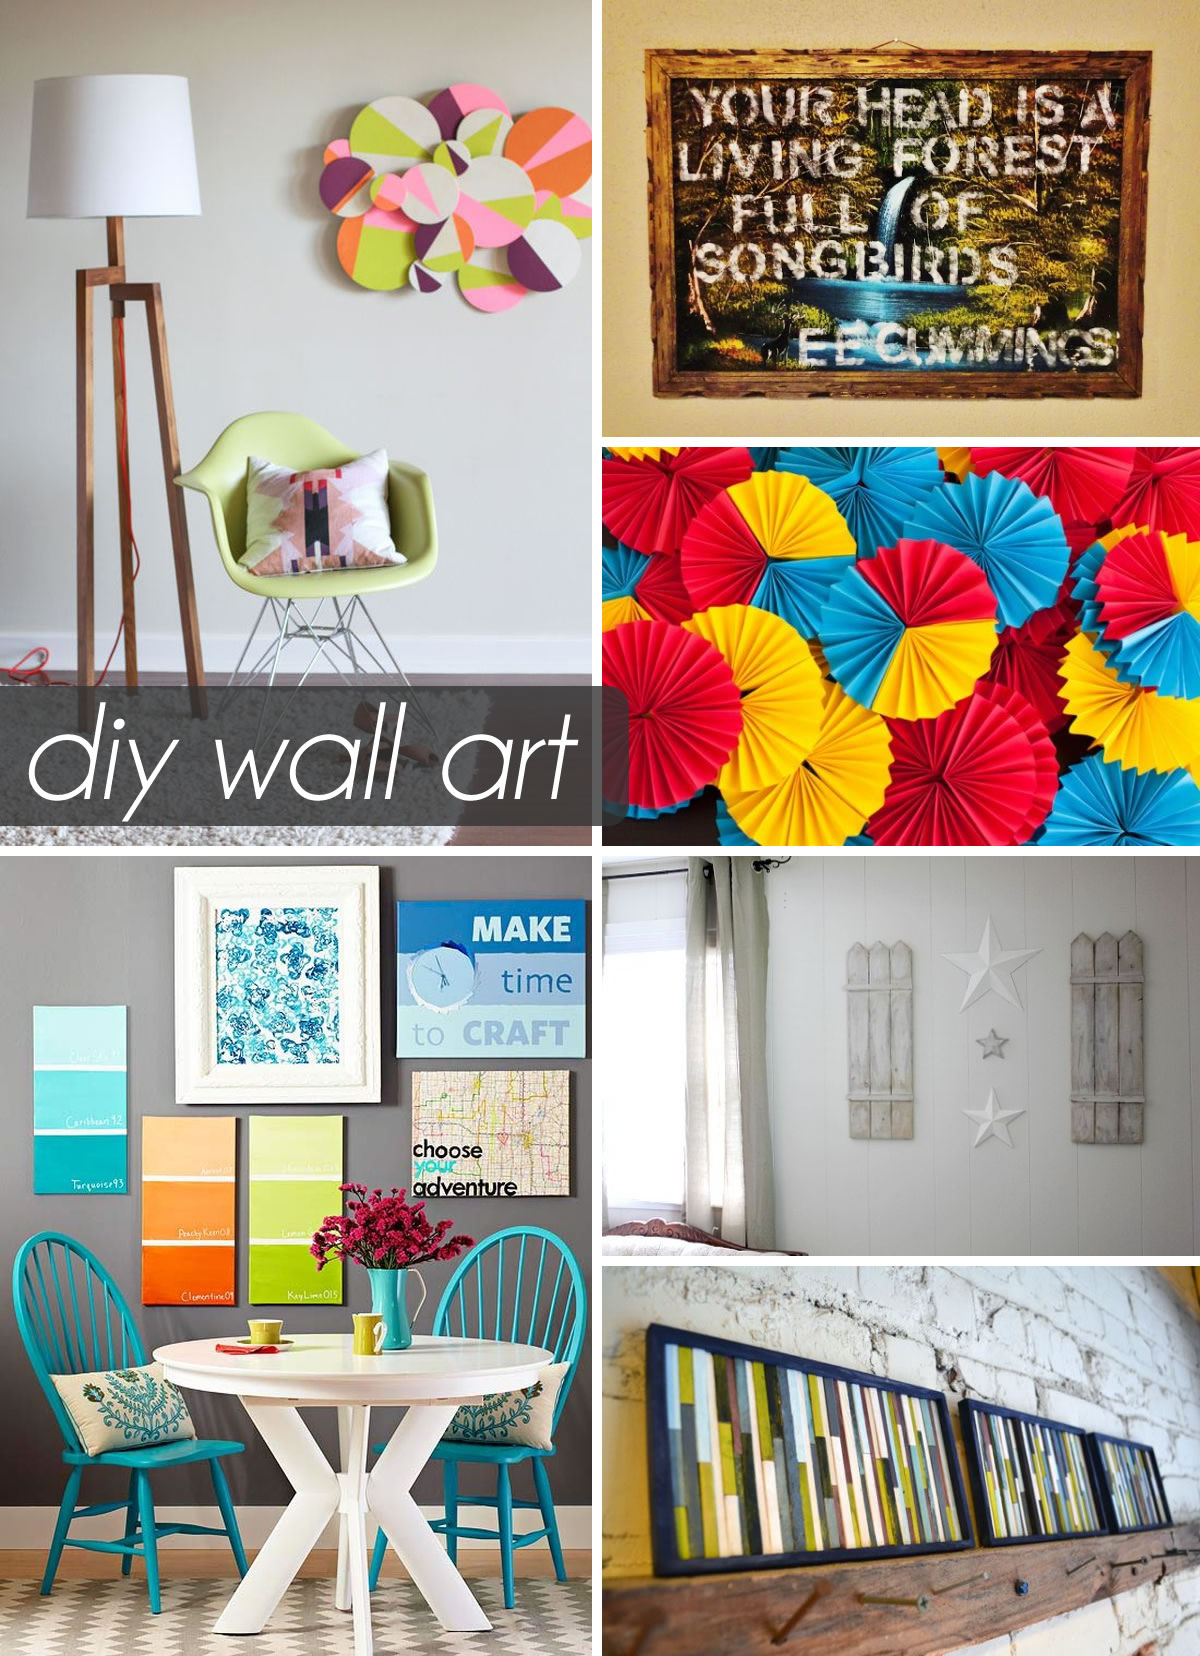 Bedroom wall decor ideas diy - Bedroom Wall Decor Ideas Diy 2